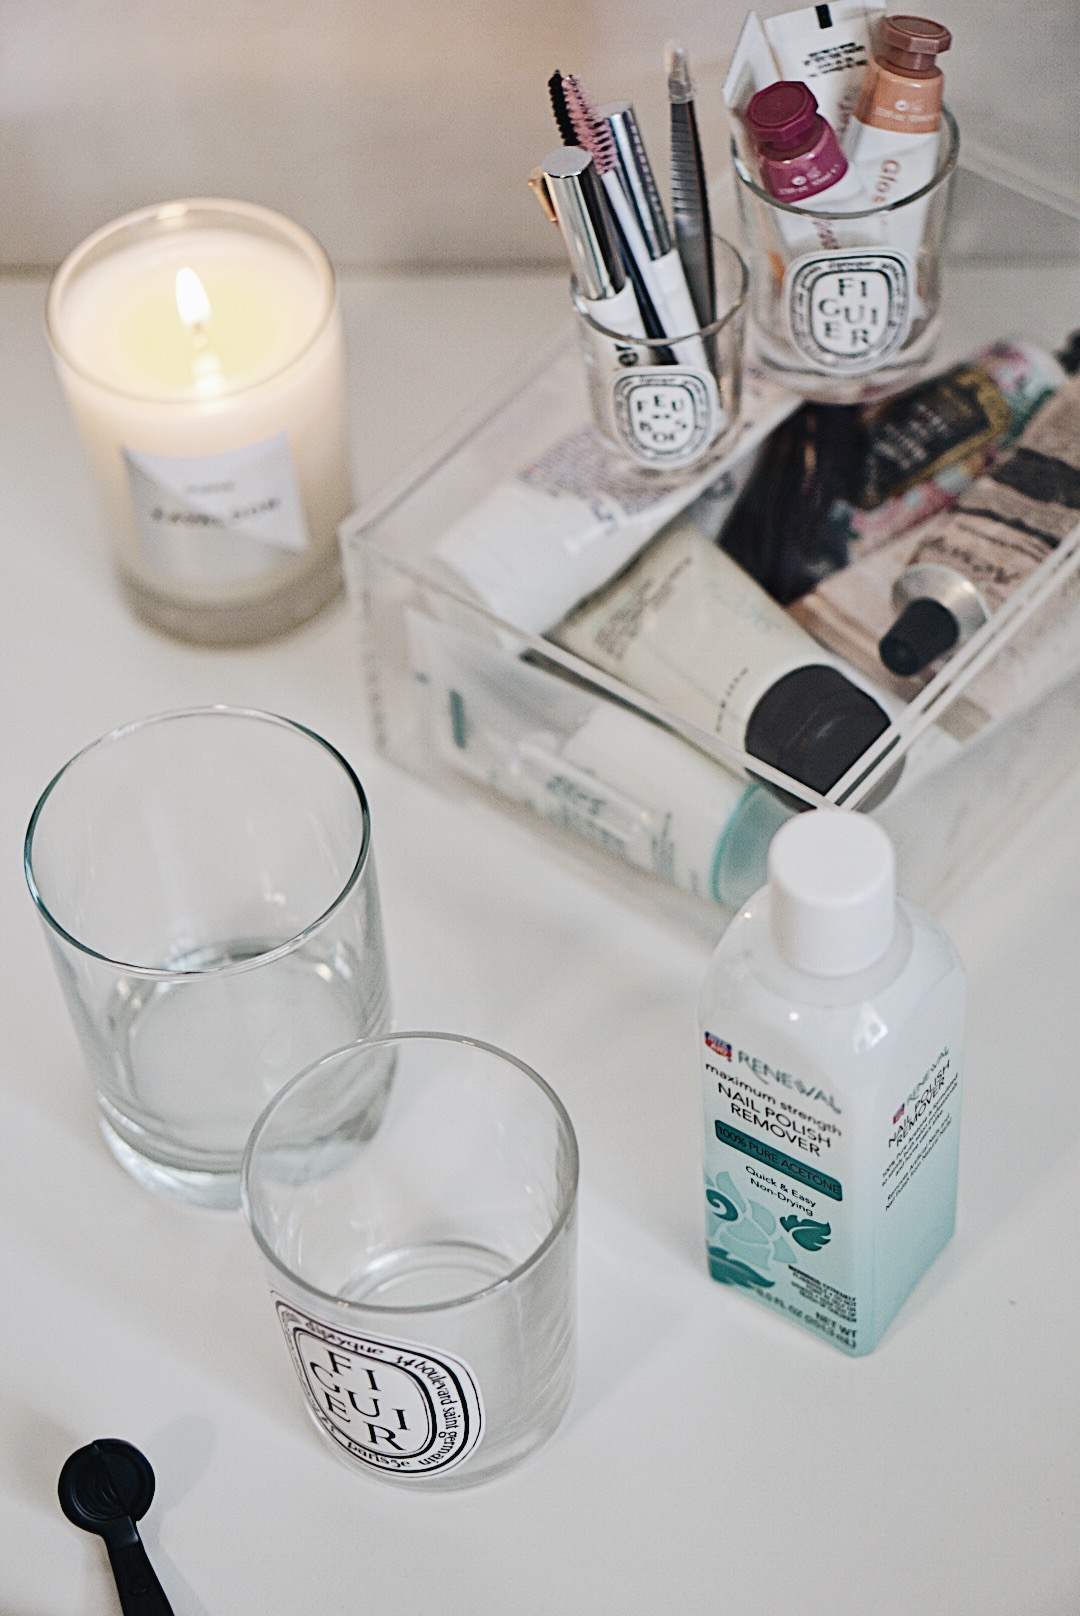 Repurposing Candle Jars and How to Clean Them, Diptyque Jars and Glossier Products